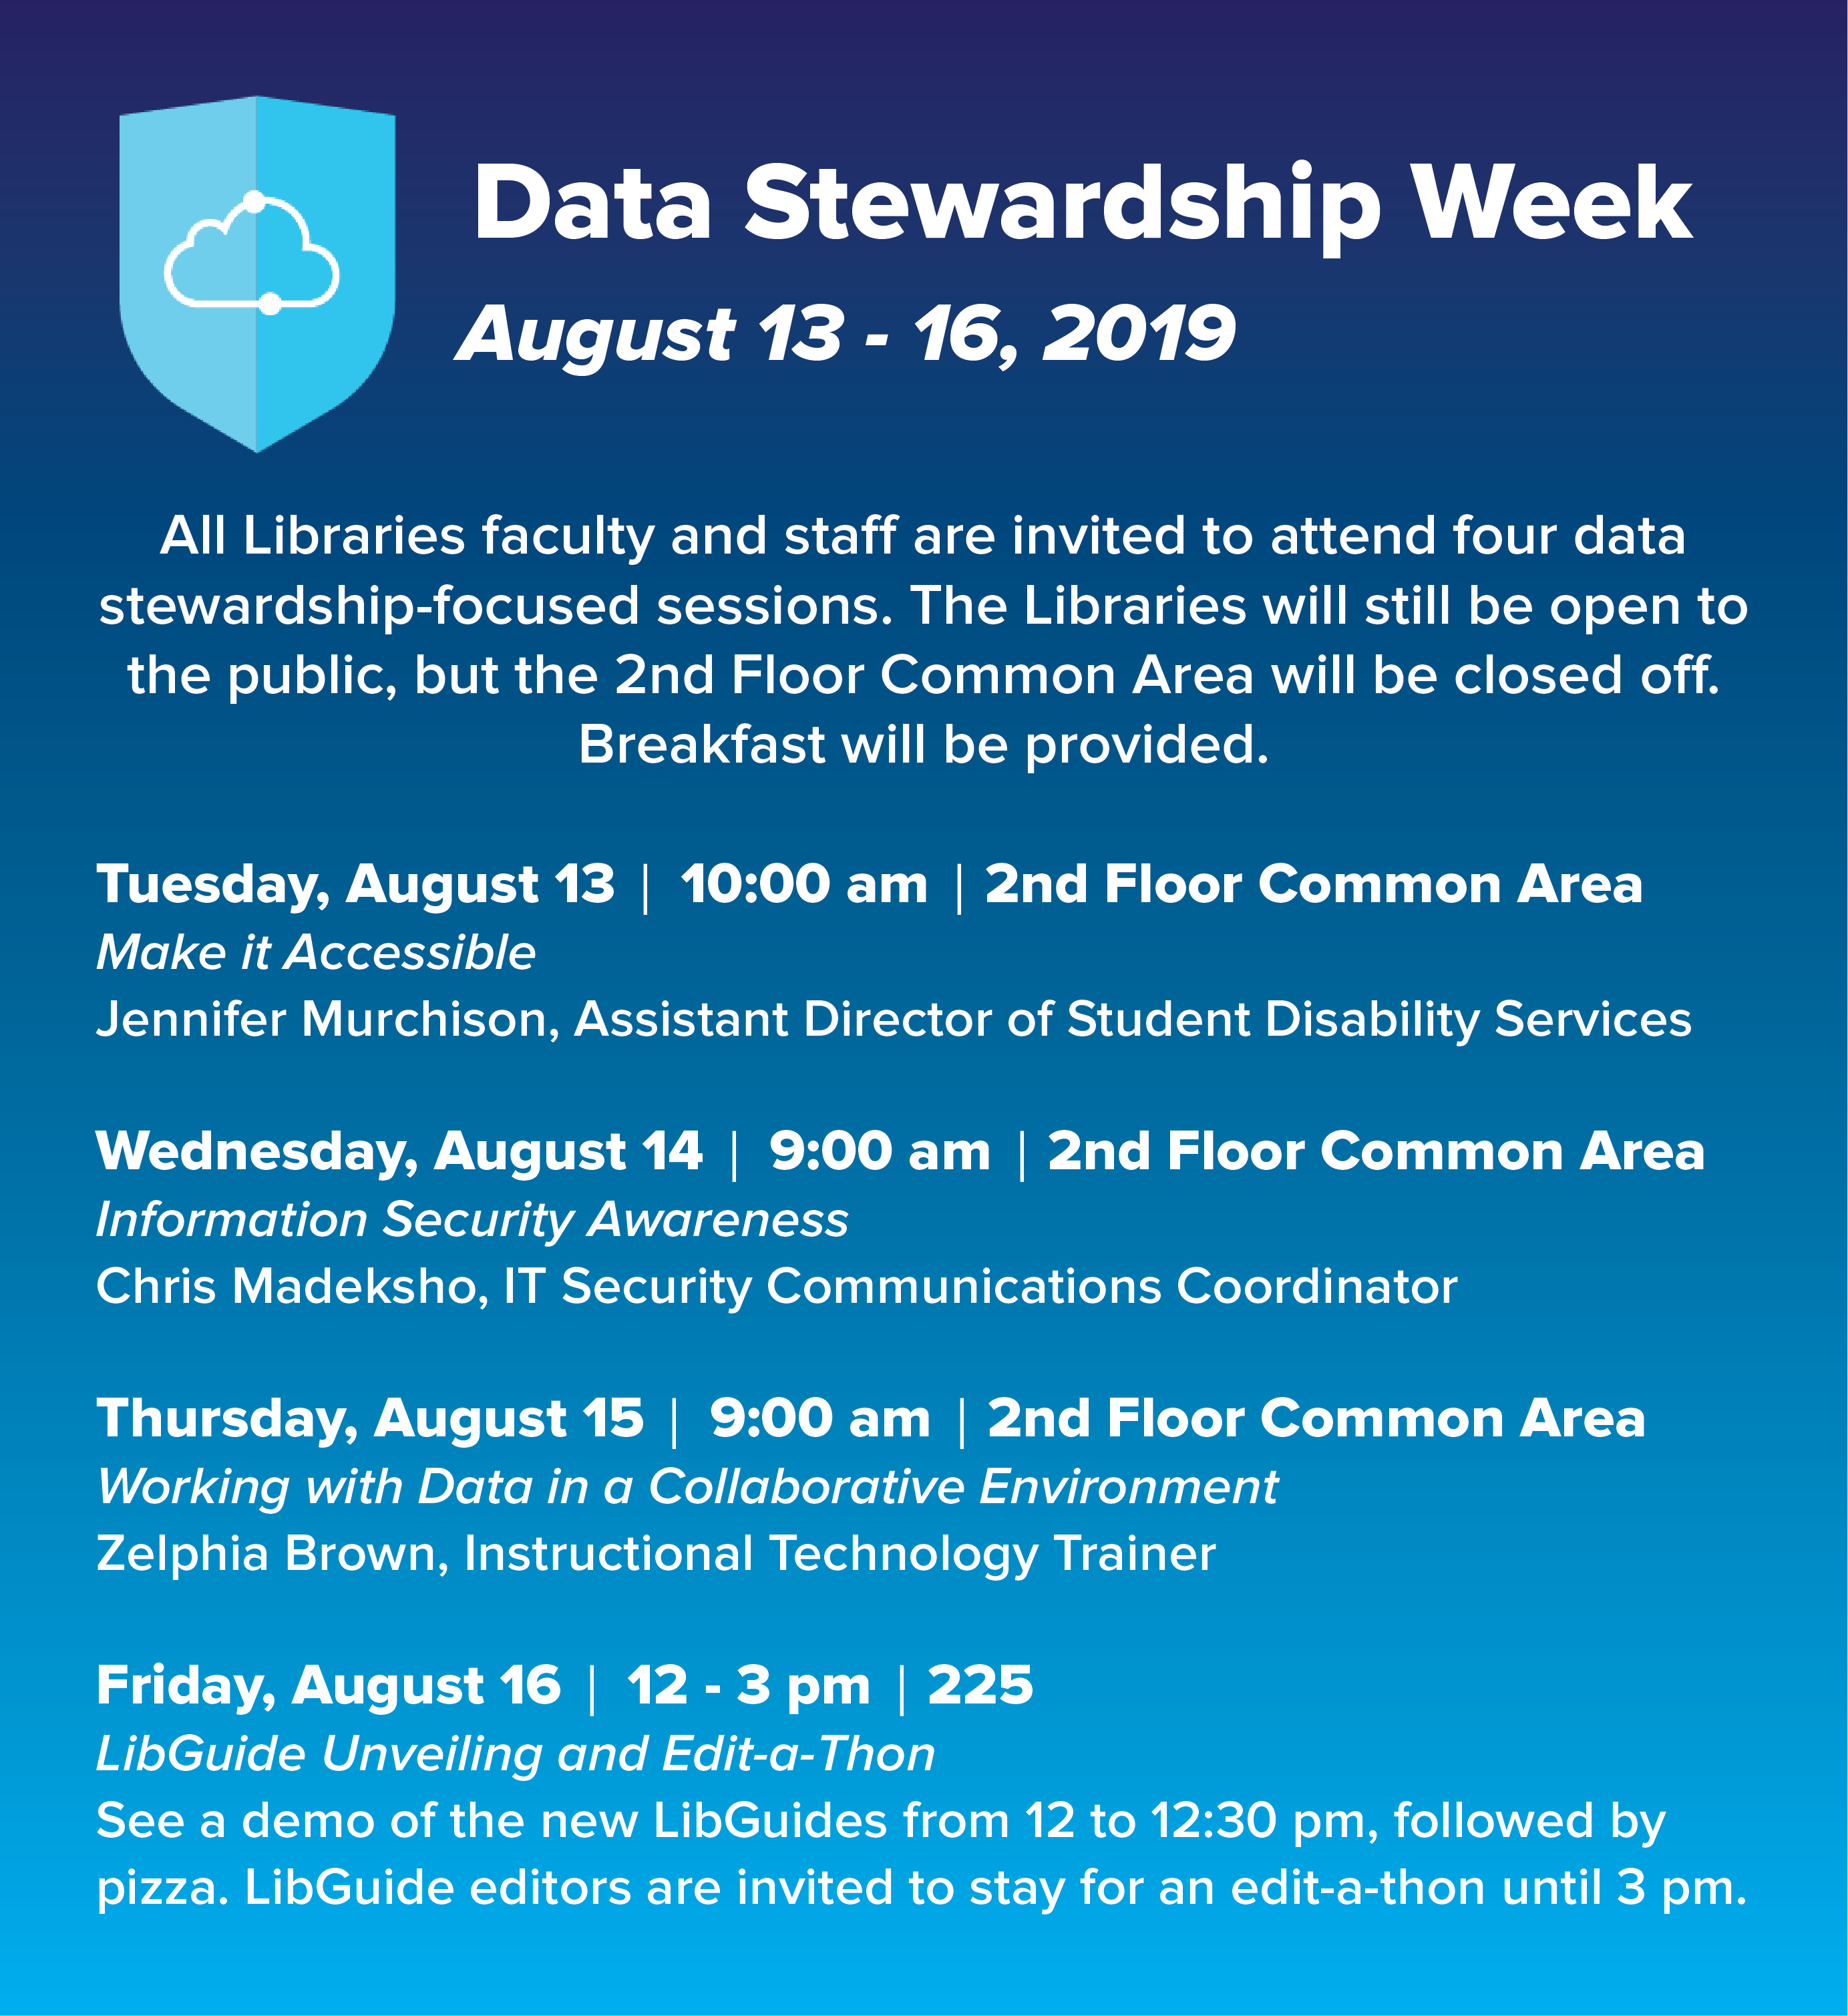 Internal Libraries' Data Stewardship Week Event